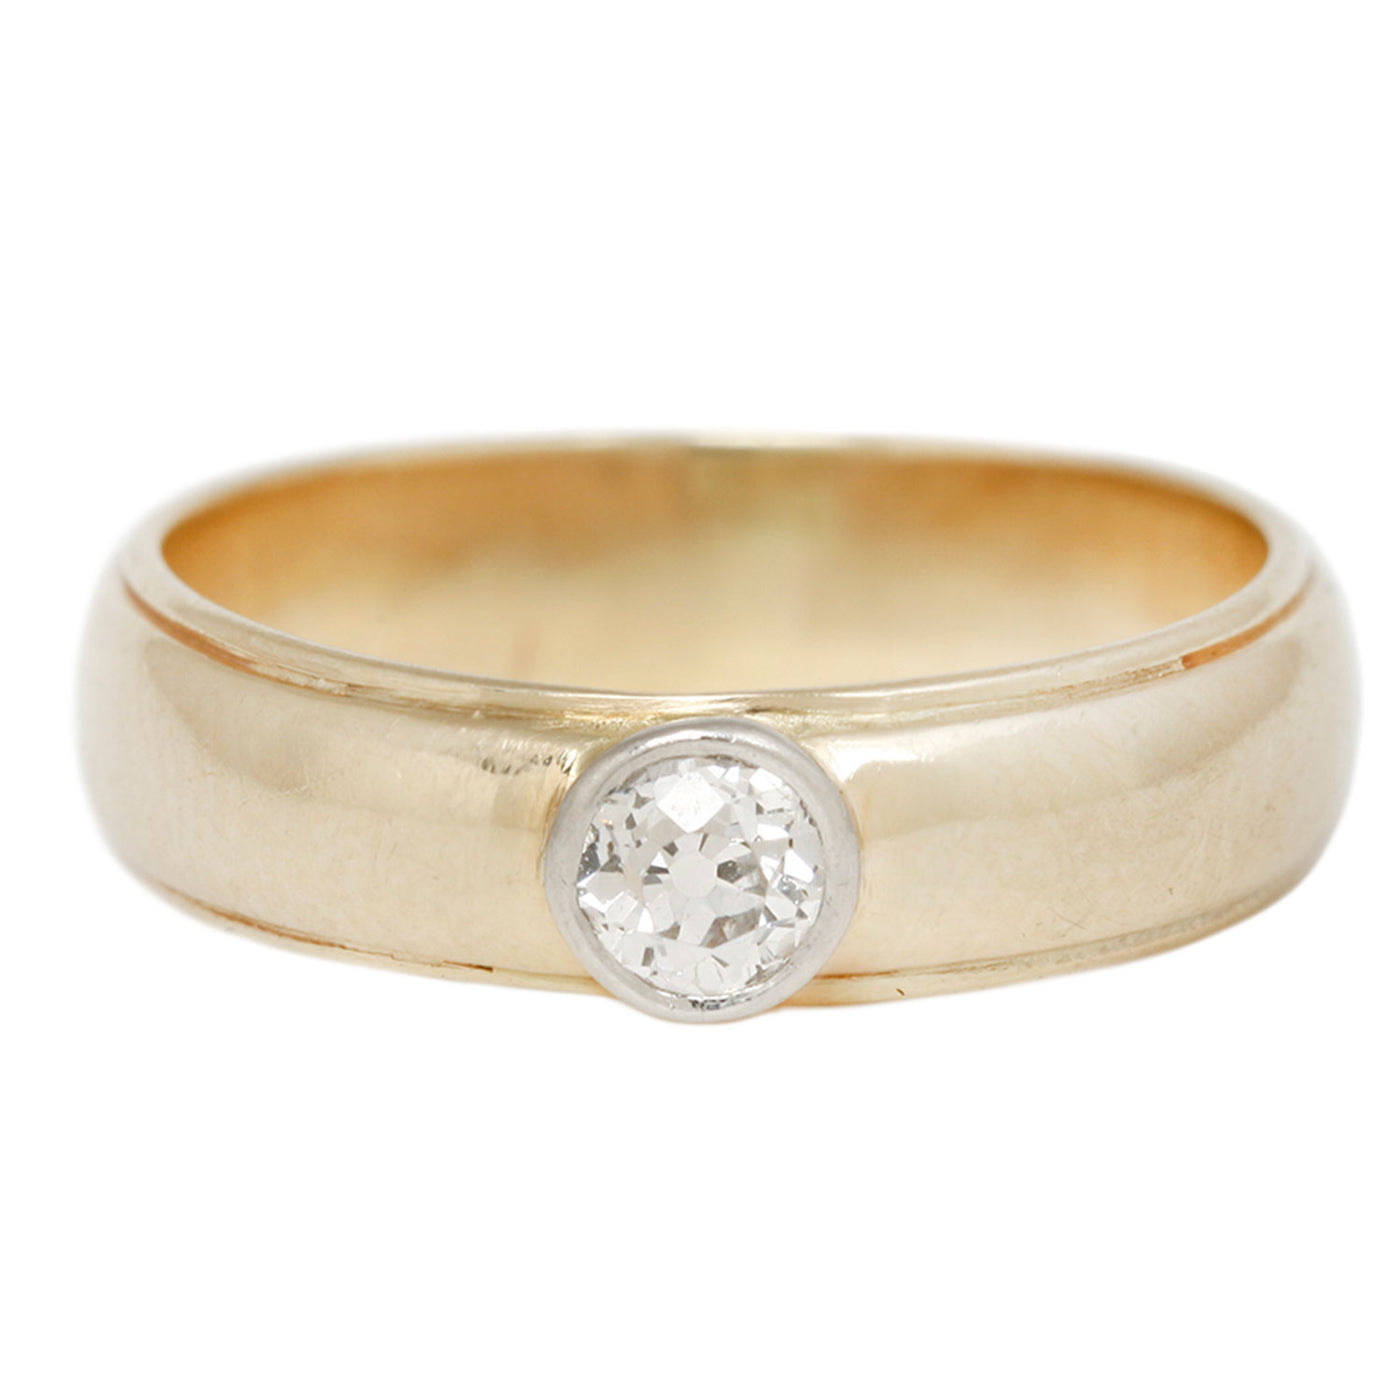 Vintage Yellow Gold Bezel Set Diamond Solitaire Ring